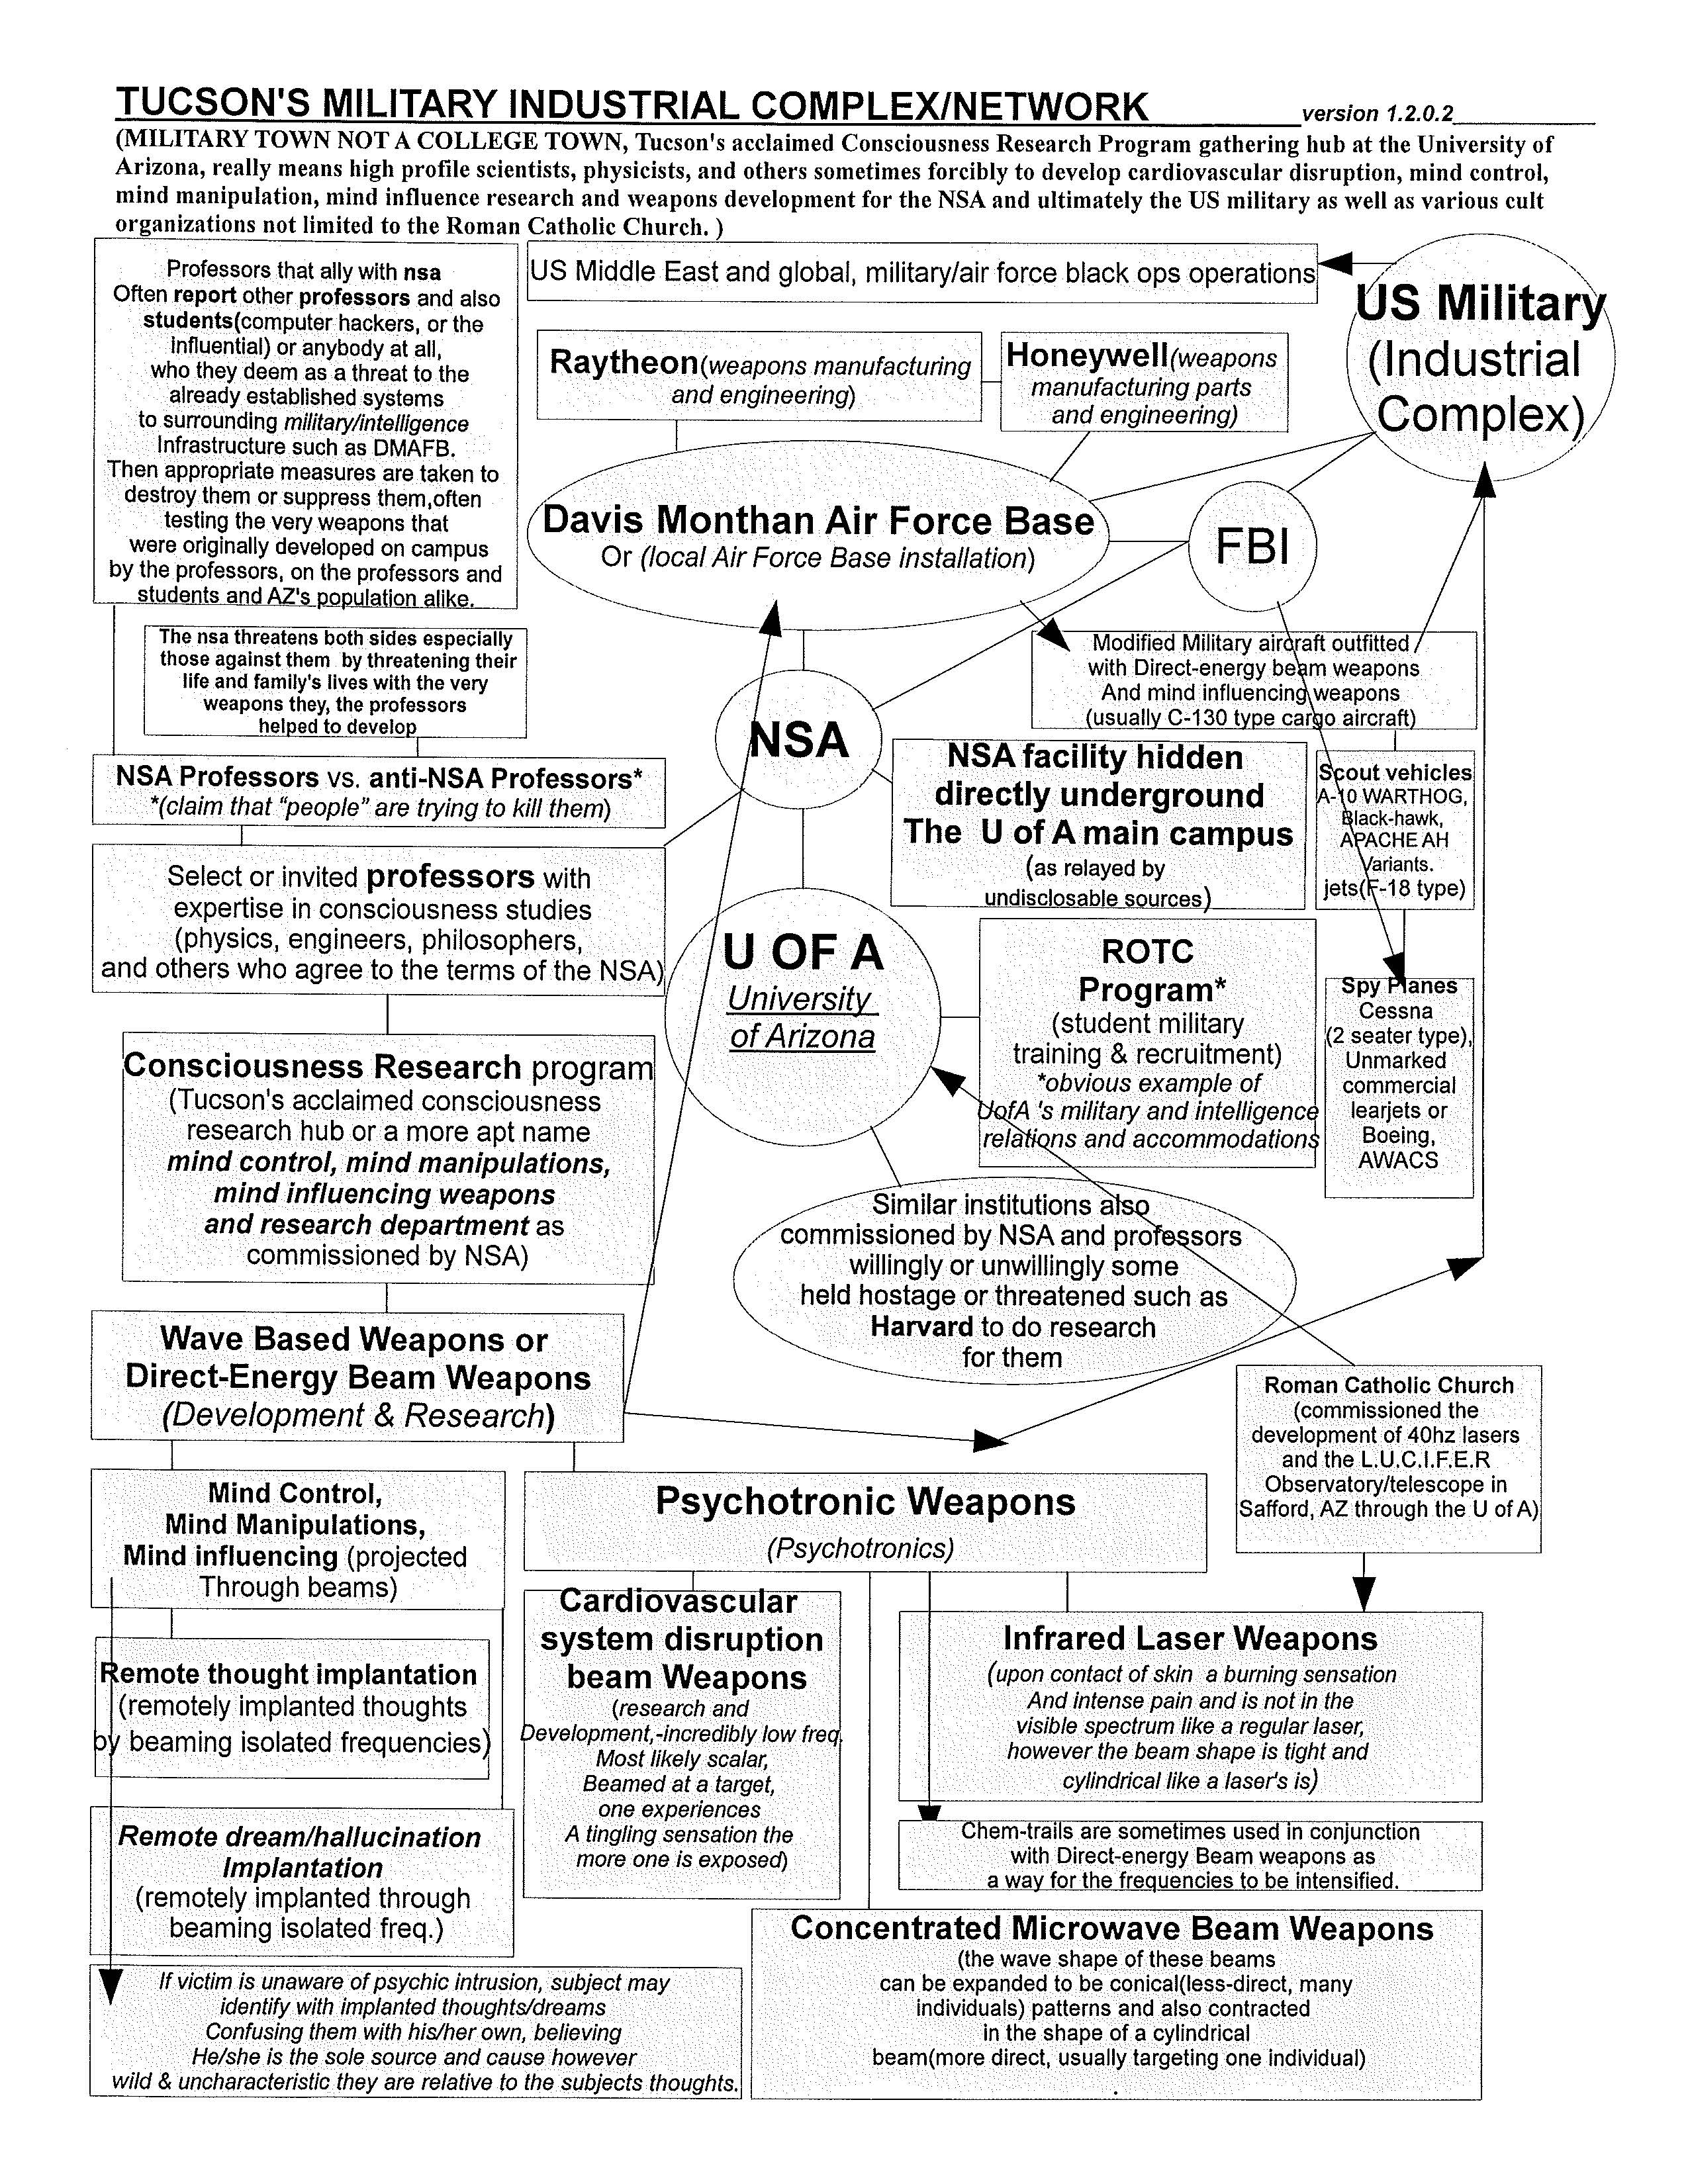 File:Tucson Military Industrial Complex-Network jpg